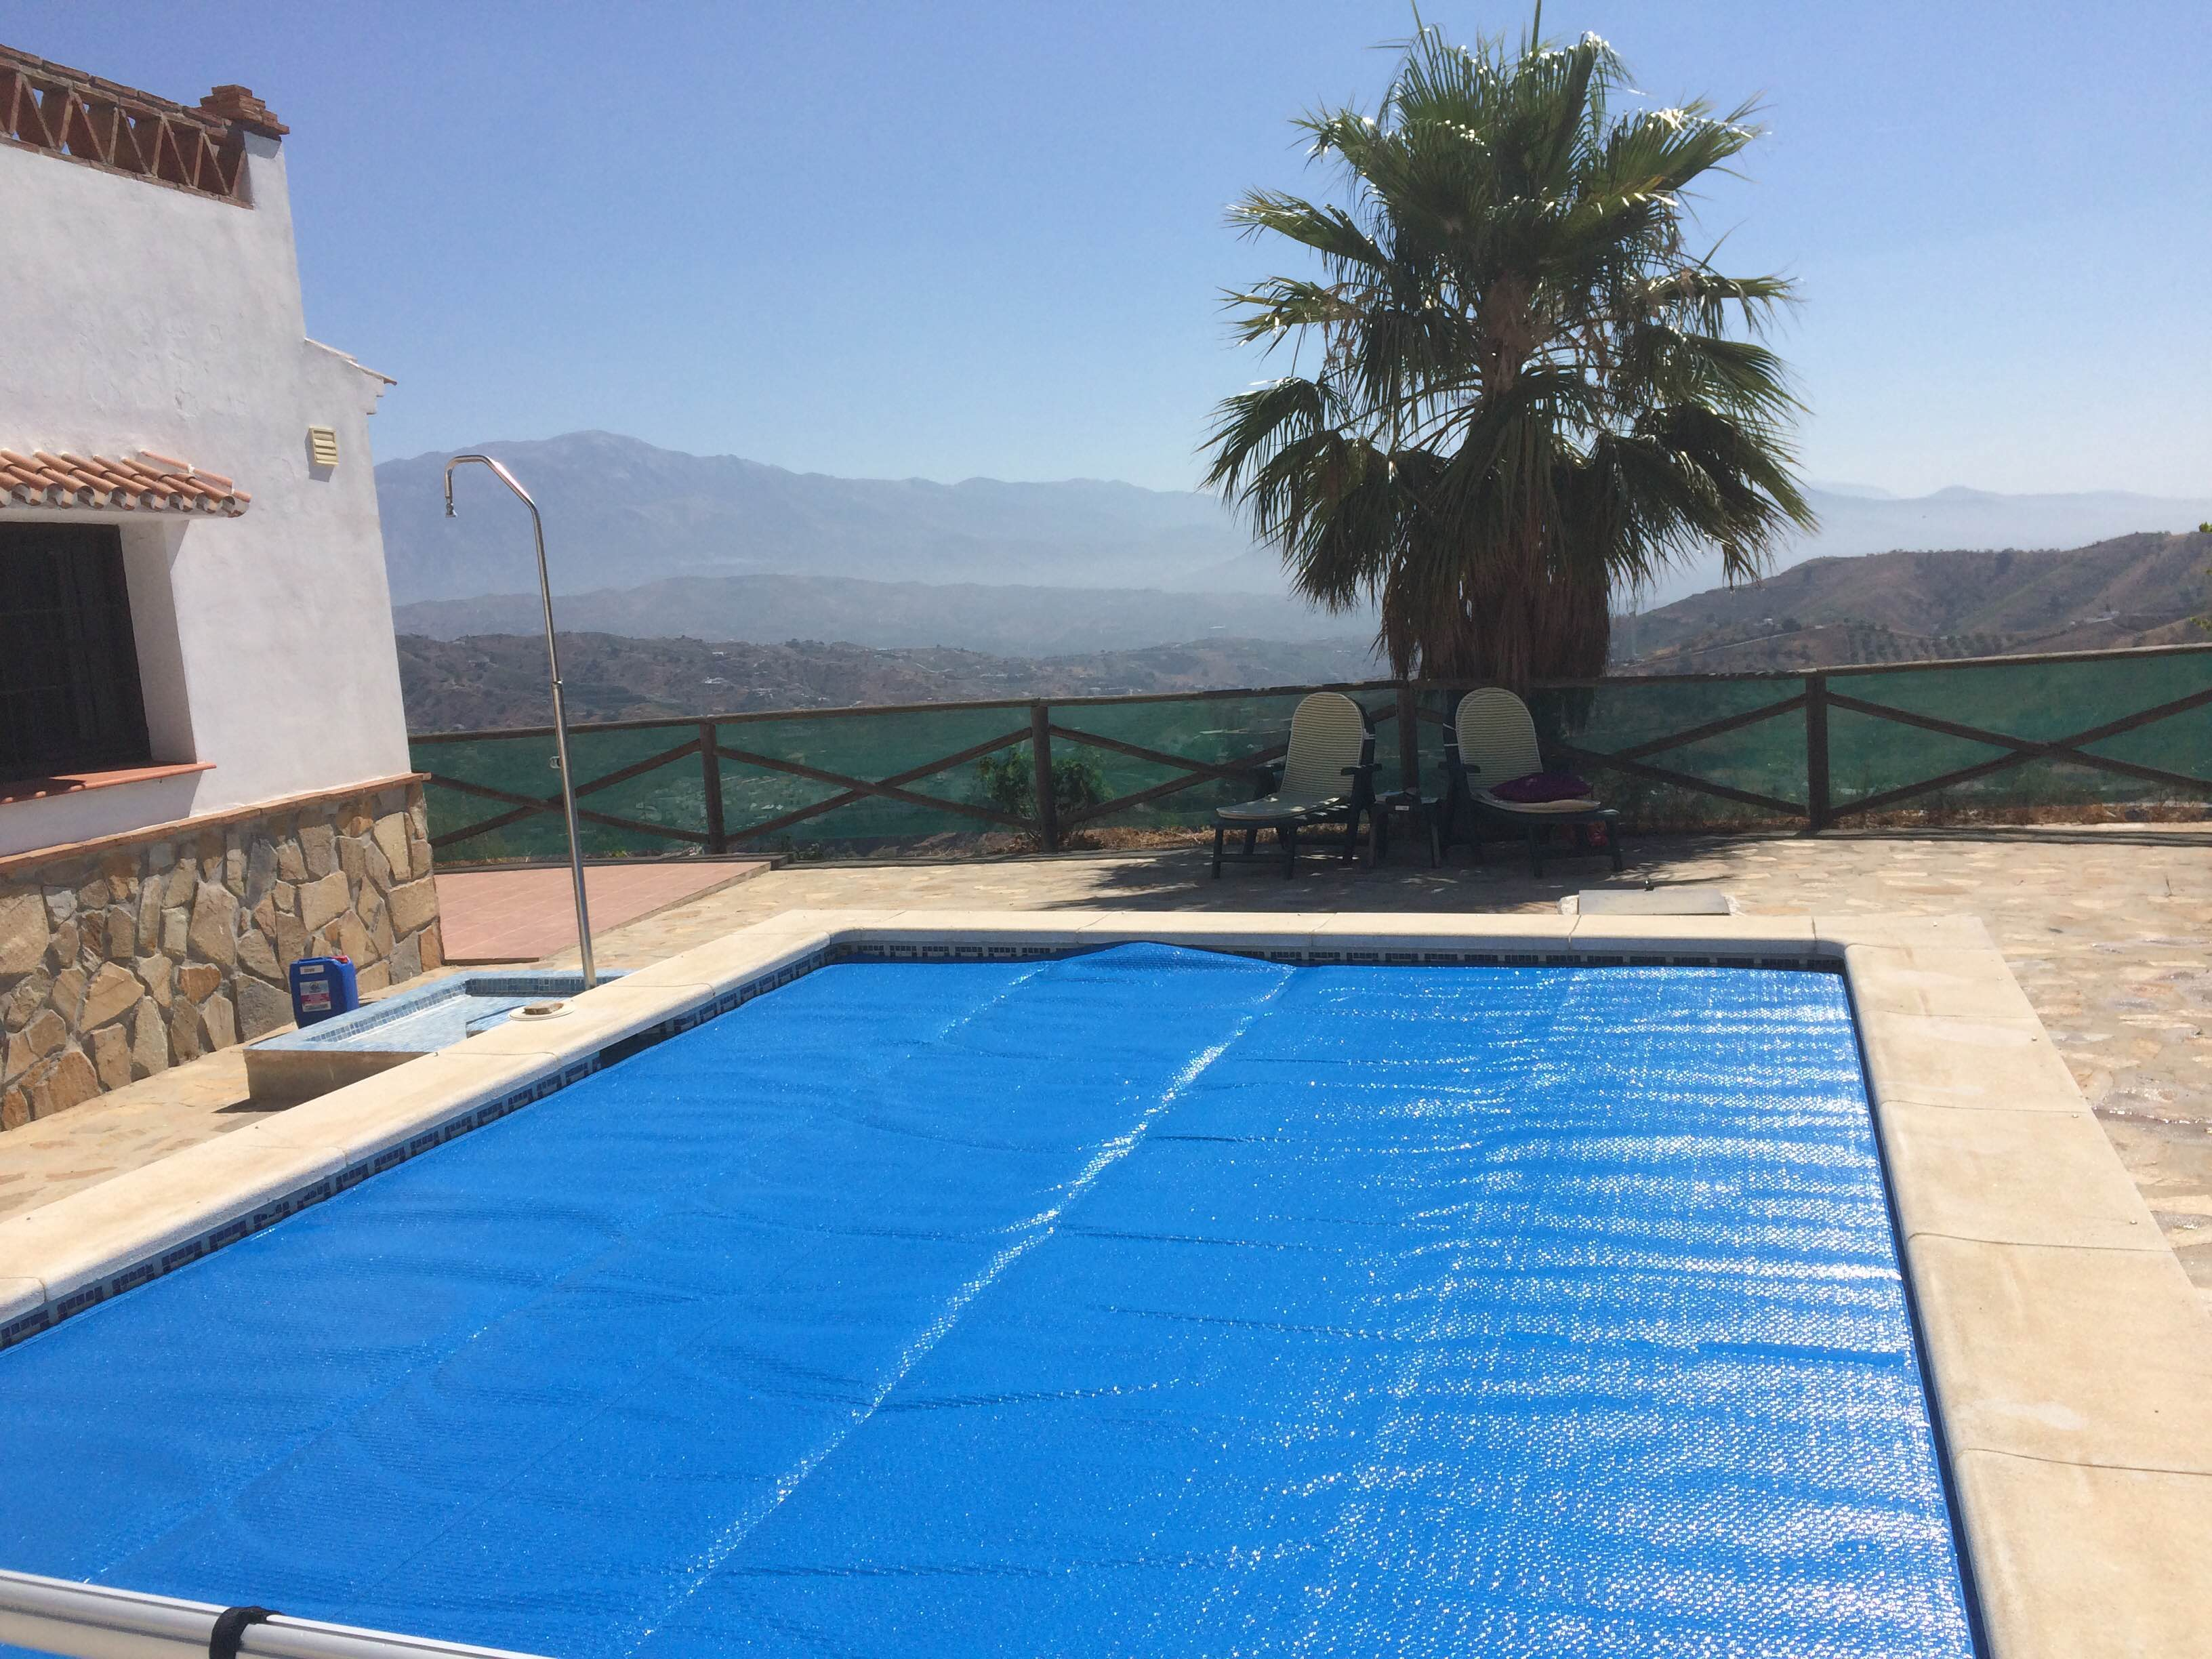 Pool covers pool and garden services for Garden pool with cover